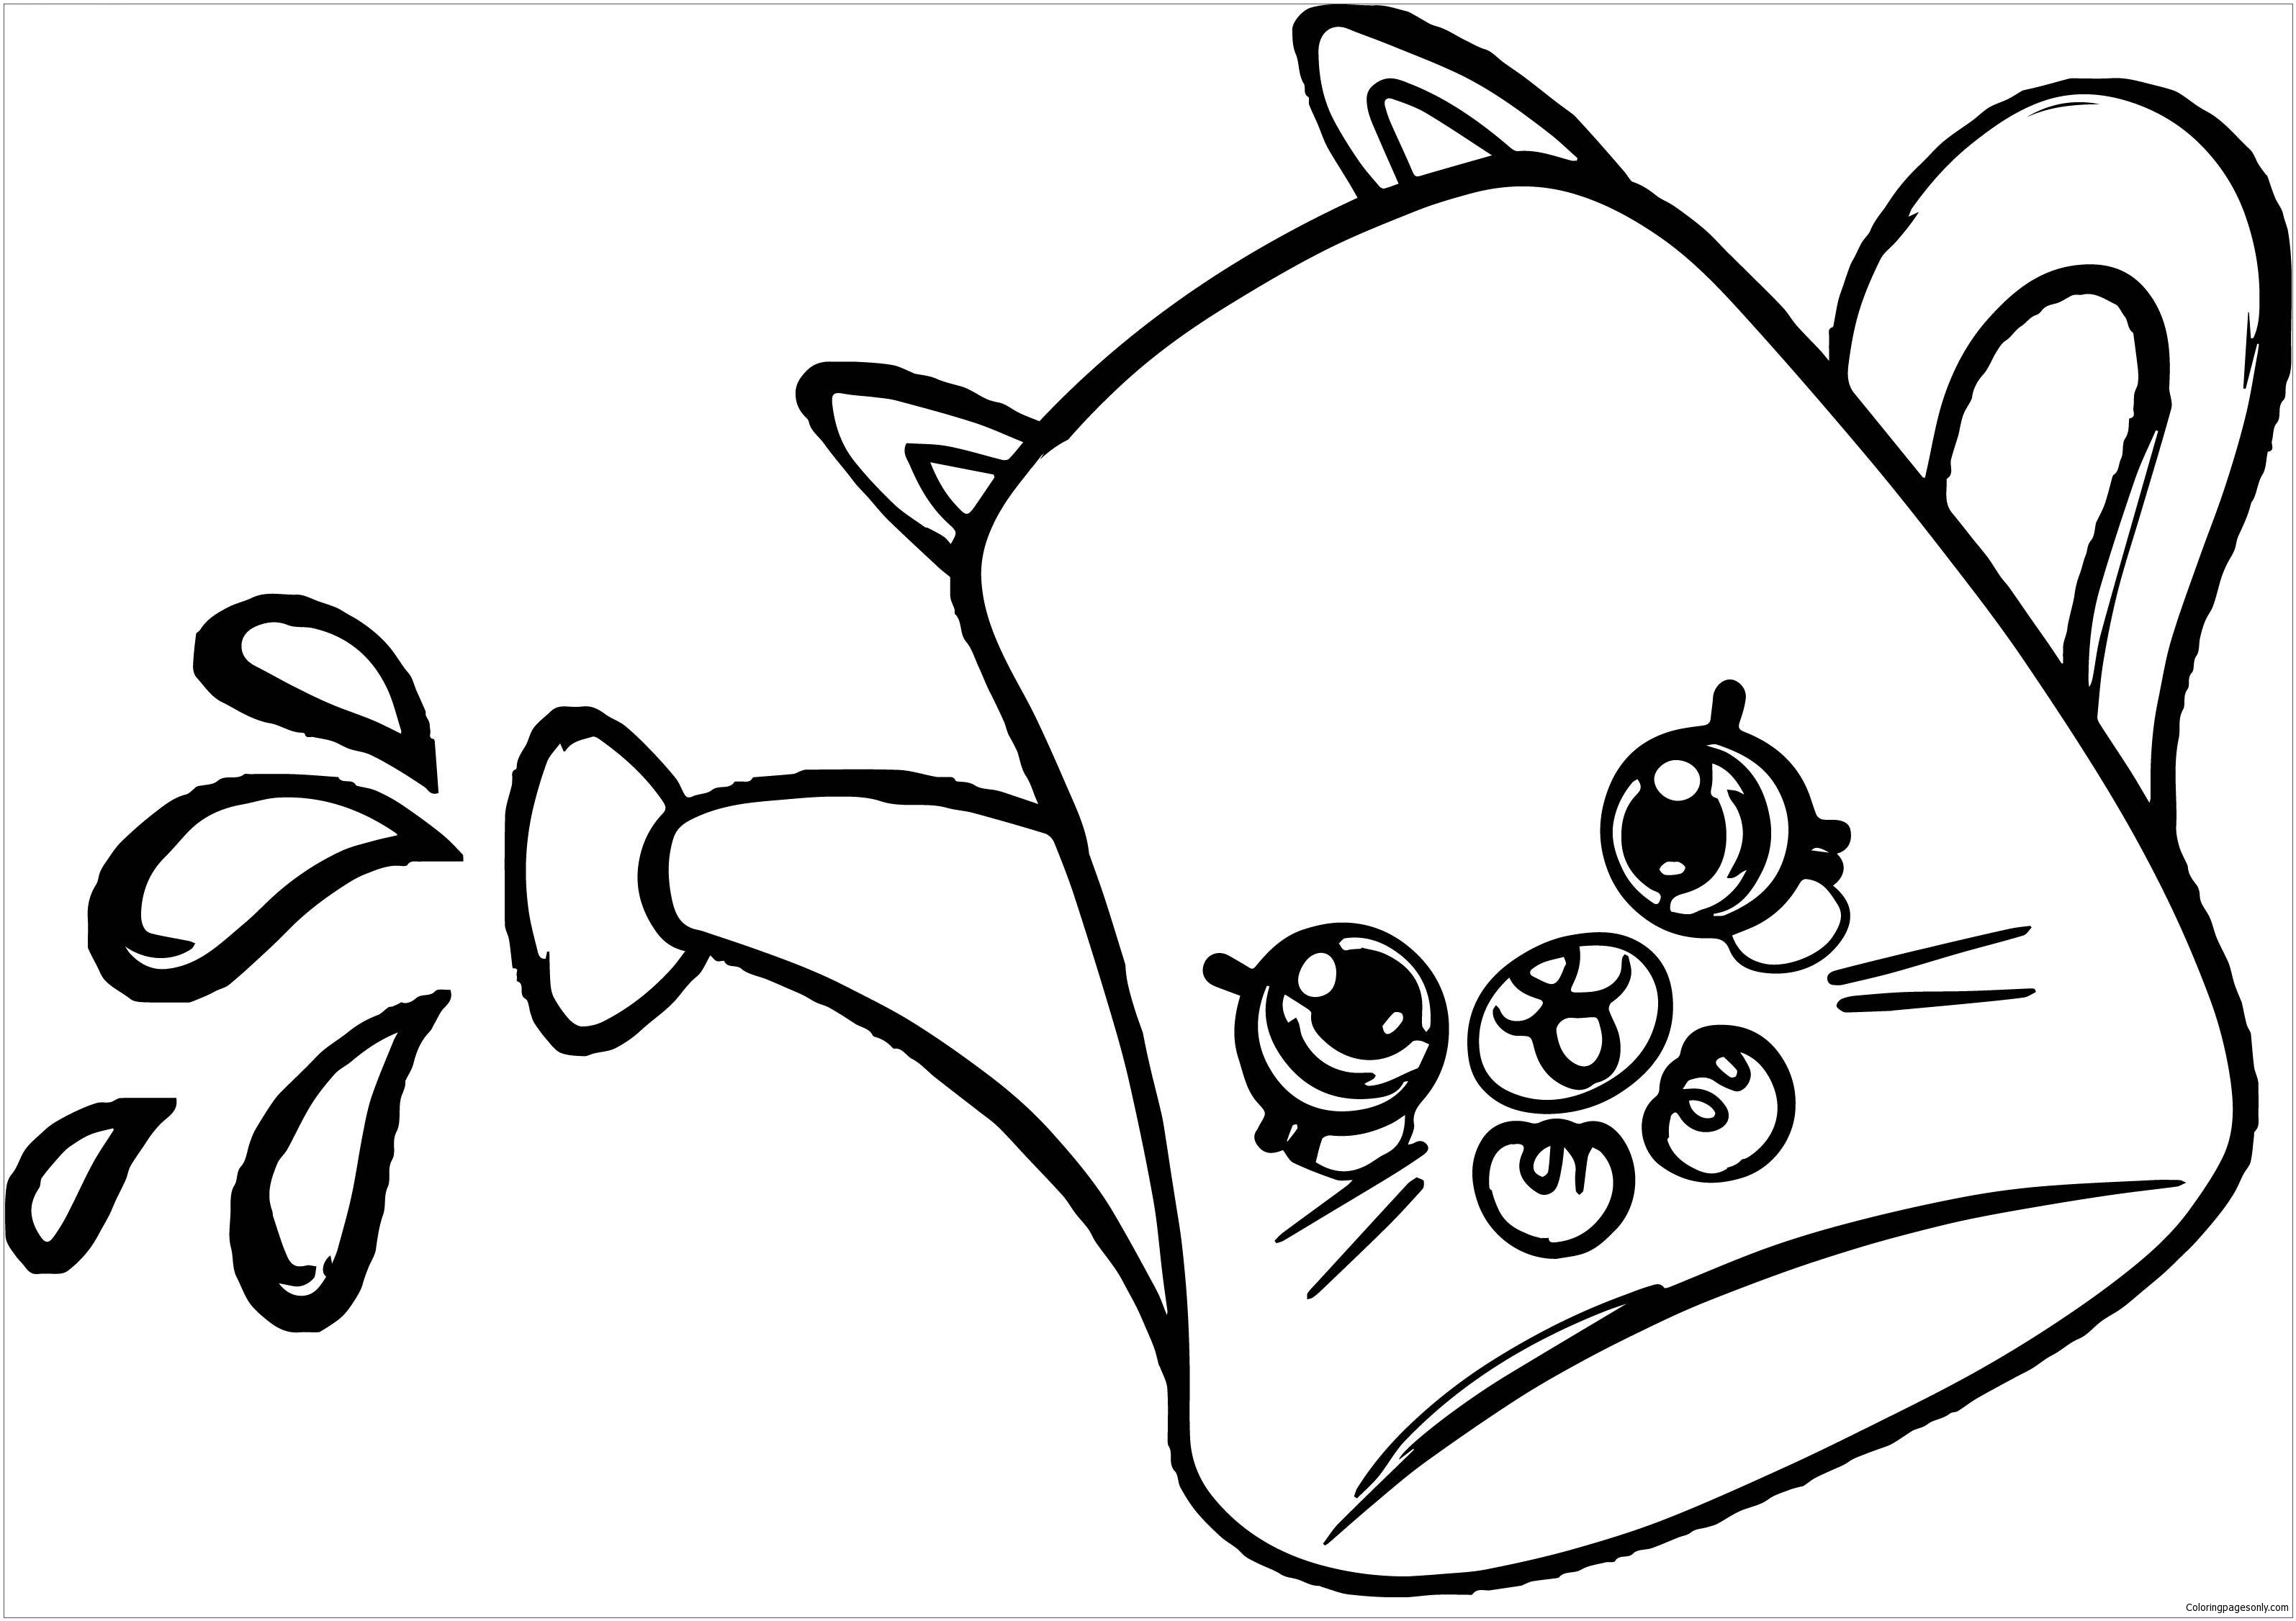 Drips From Shopkins Coloring Page